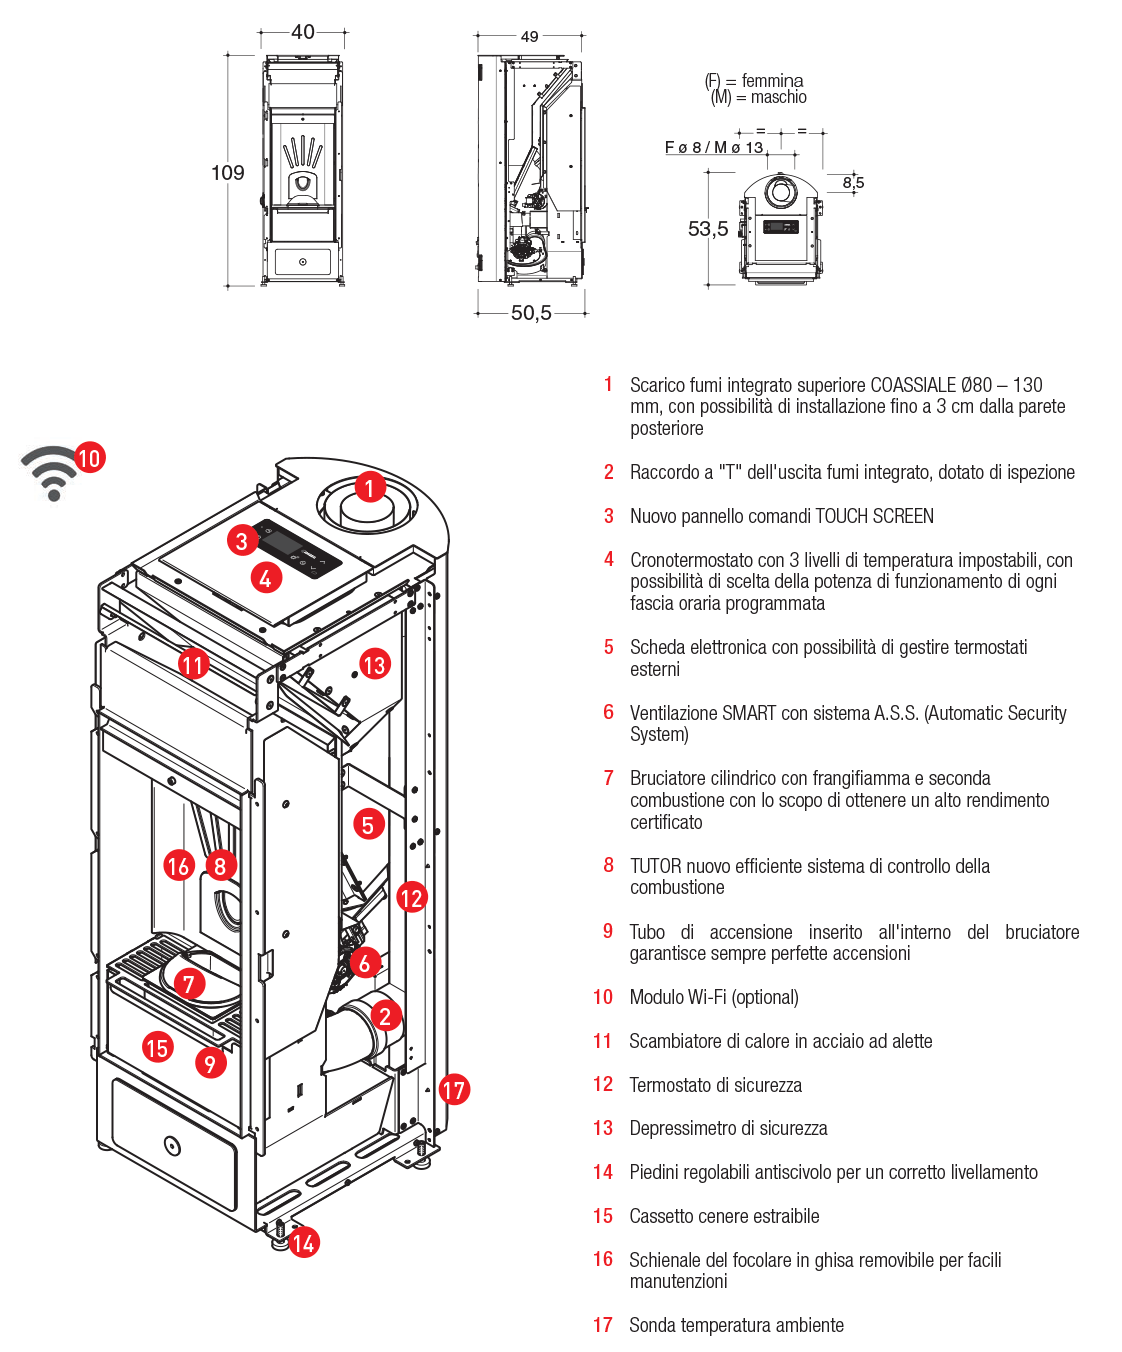 airtight pellet stove with forced convection and built-in upper coaxial flue spigot